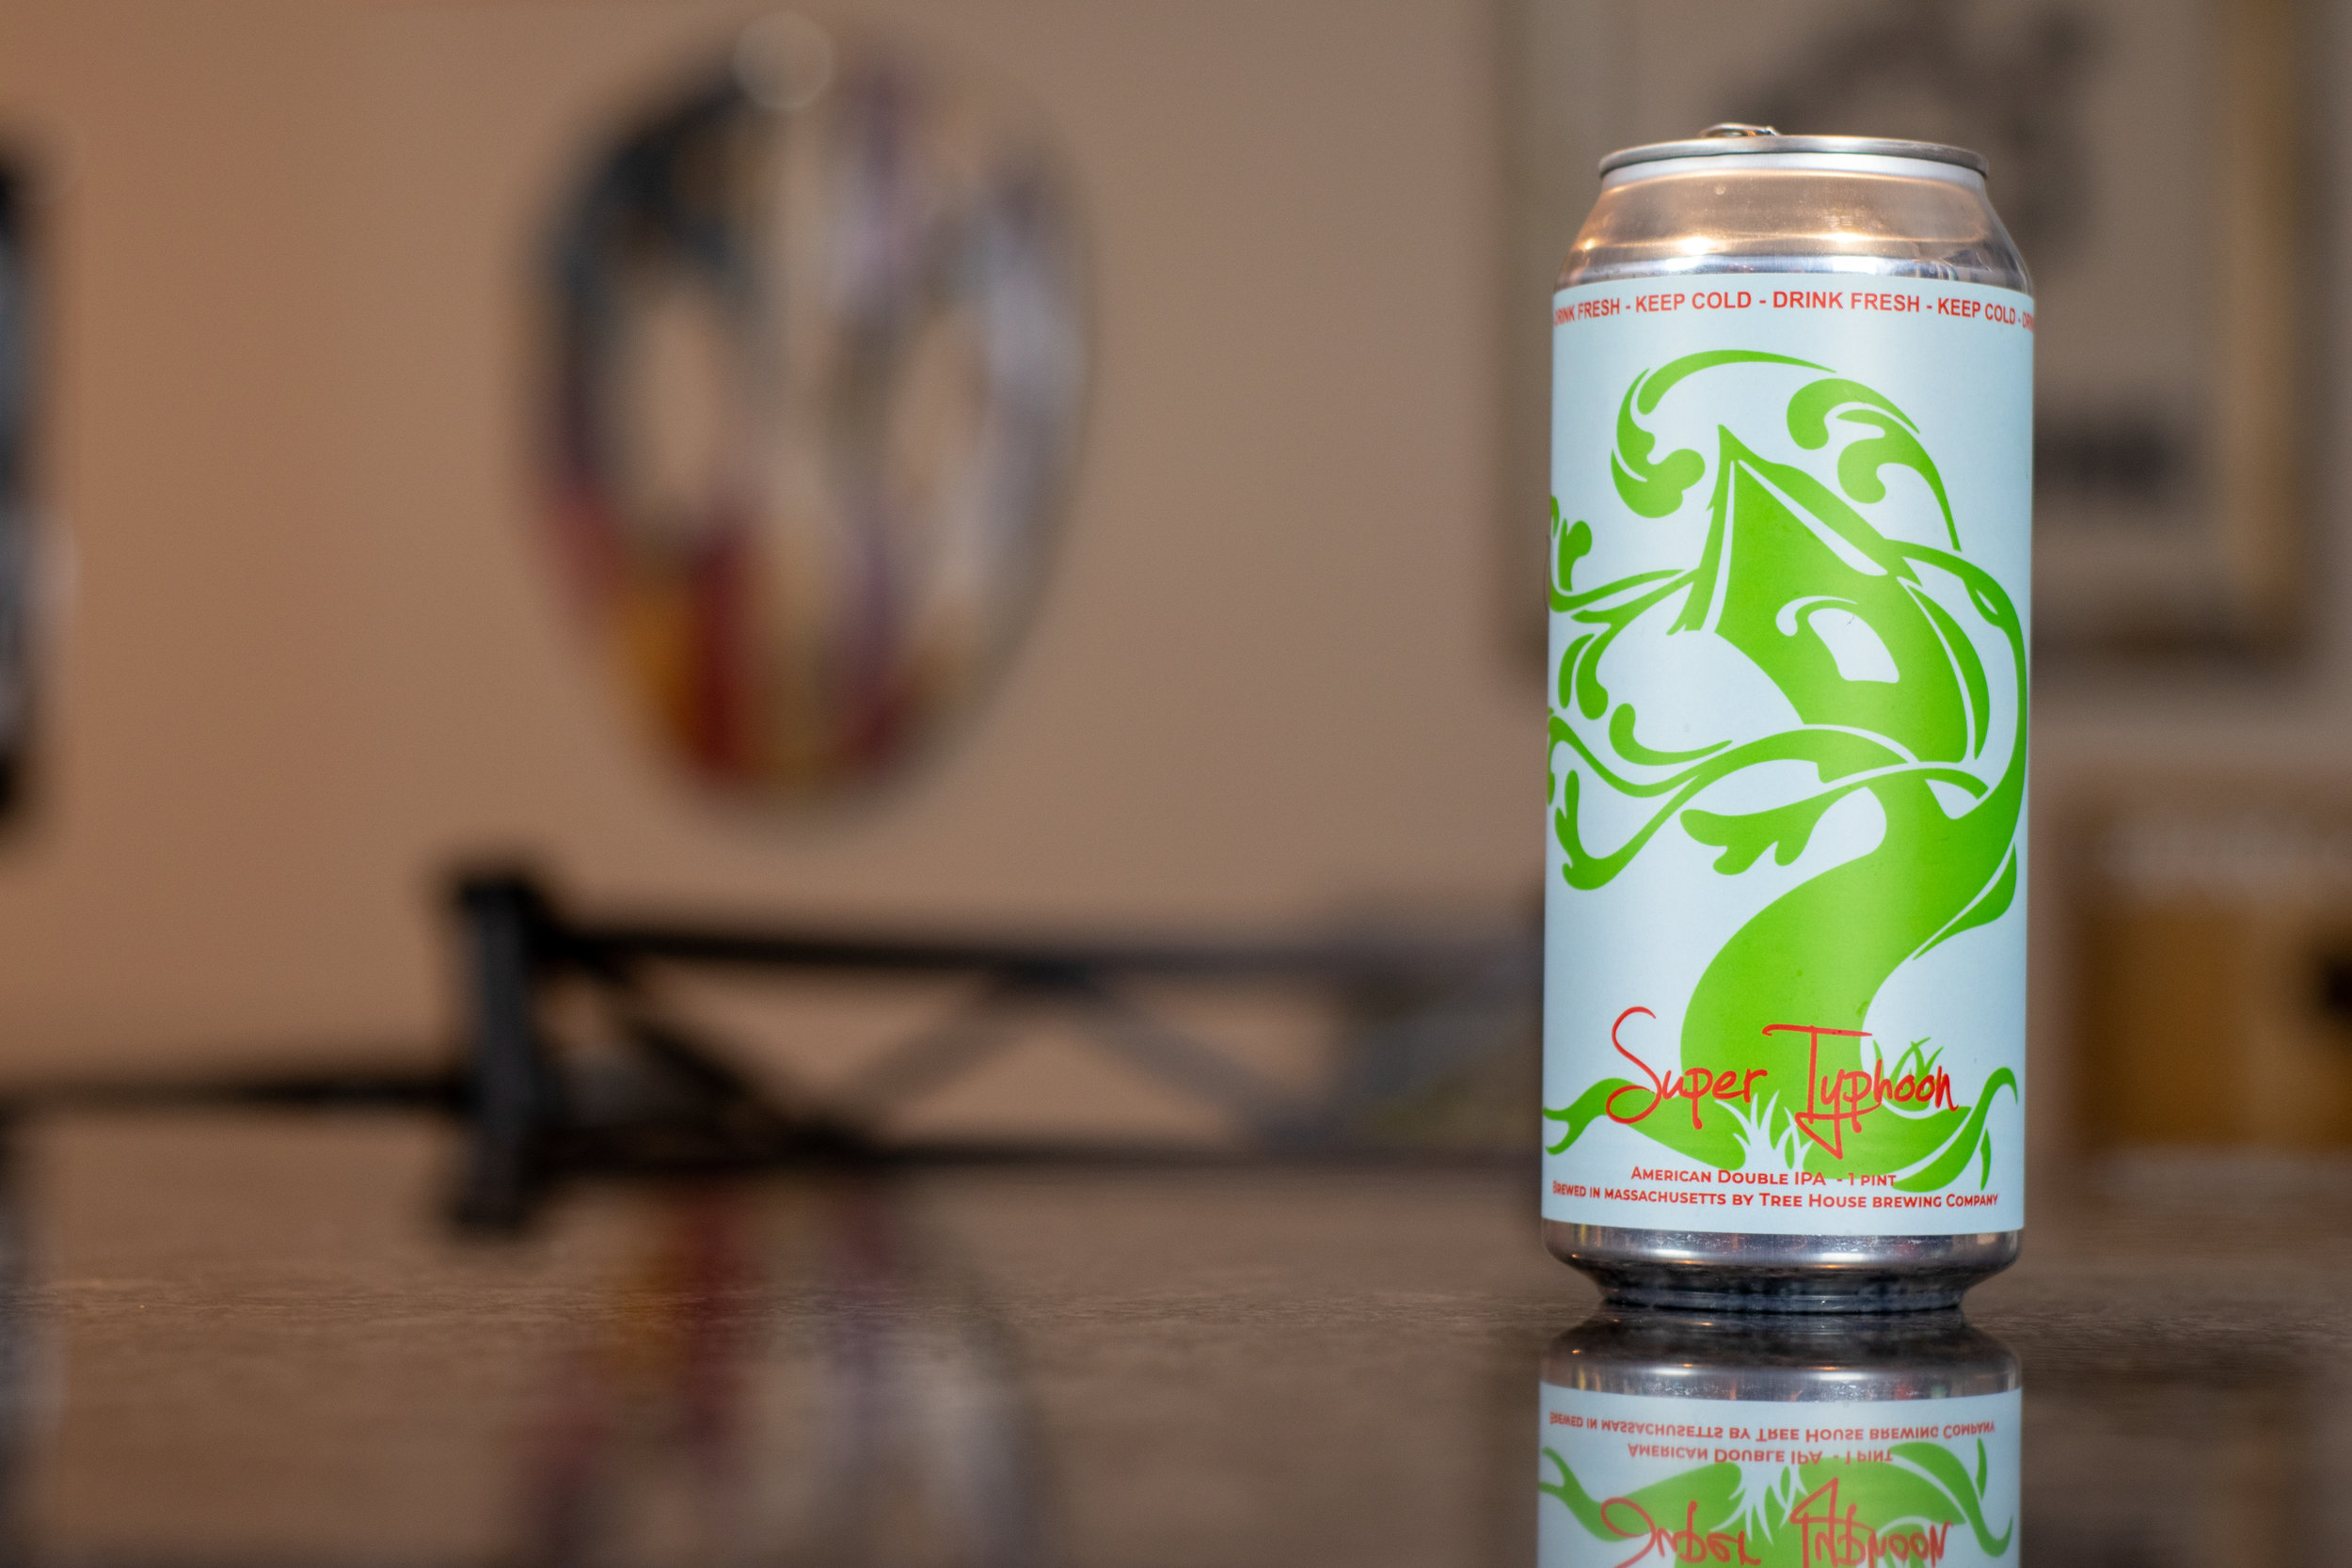 Super Typhoon 7.7% ABV - Want to see the Video Review? Click on the Image